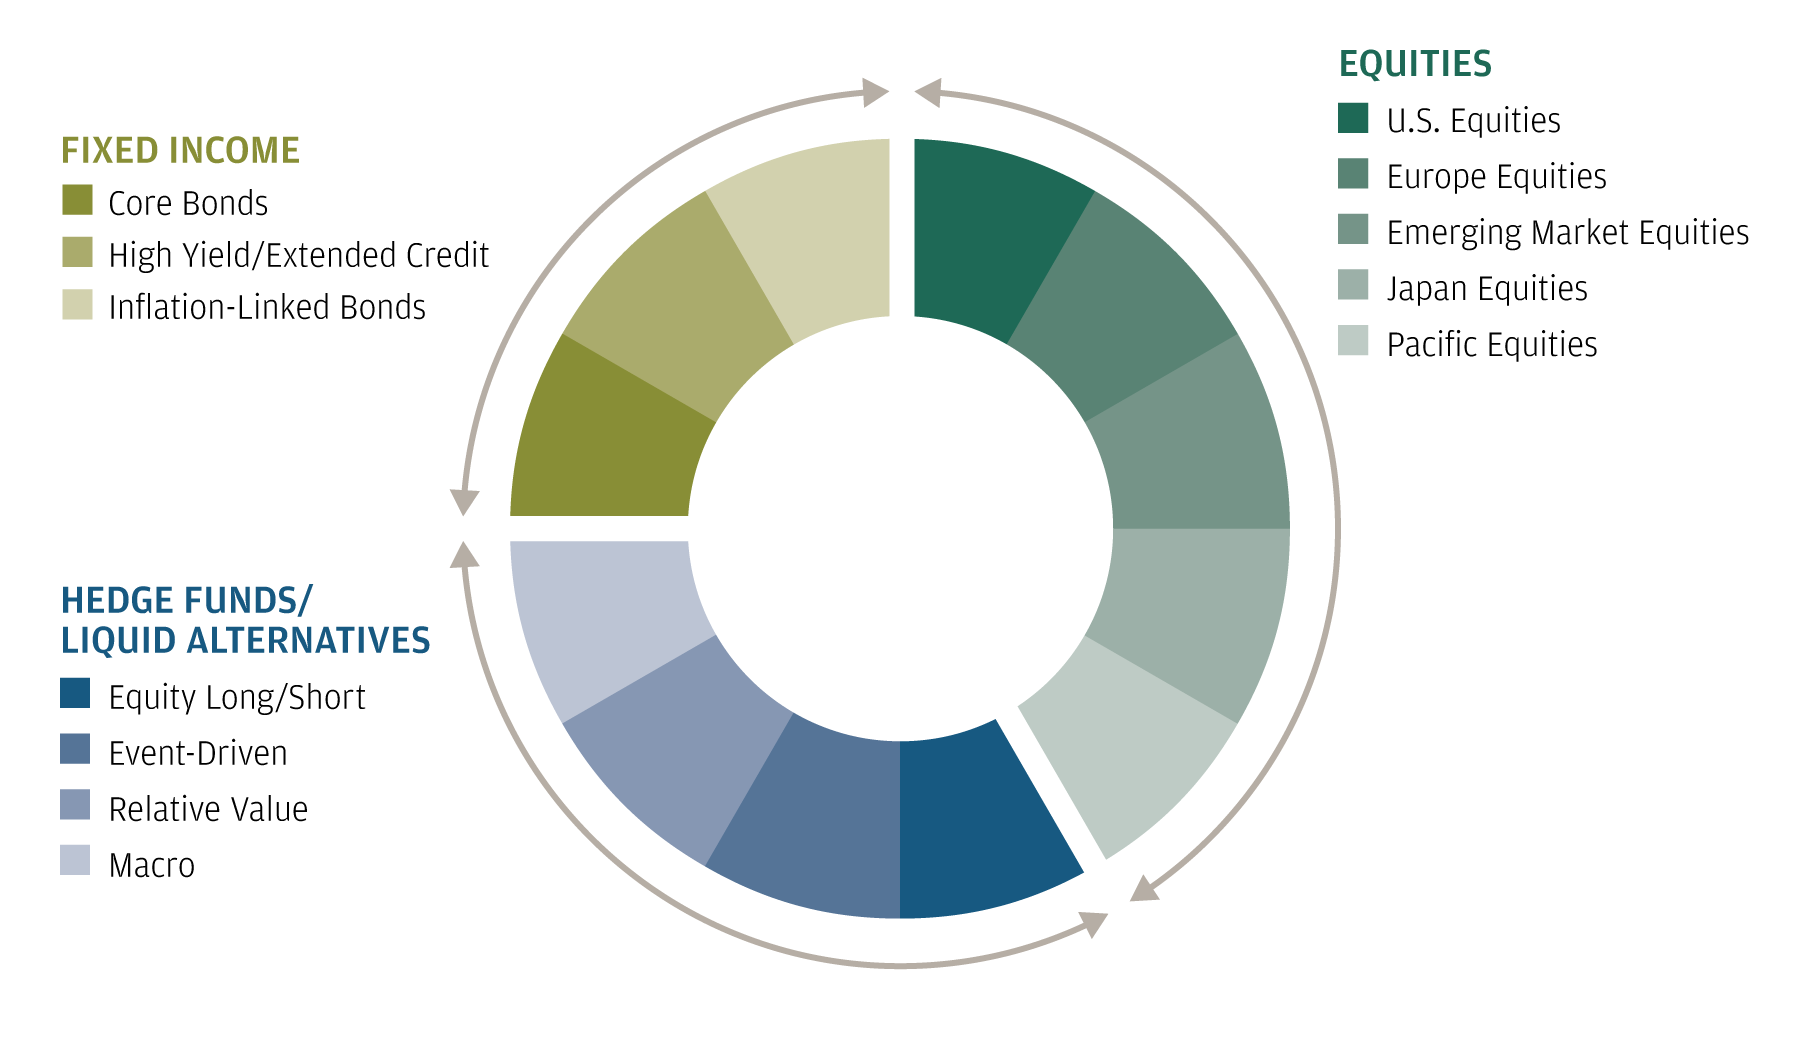 This pie chart divides a hypothetical portfolio into its component asset classes, adhering to the principles of growth, stability and diversification.